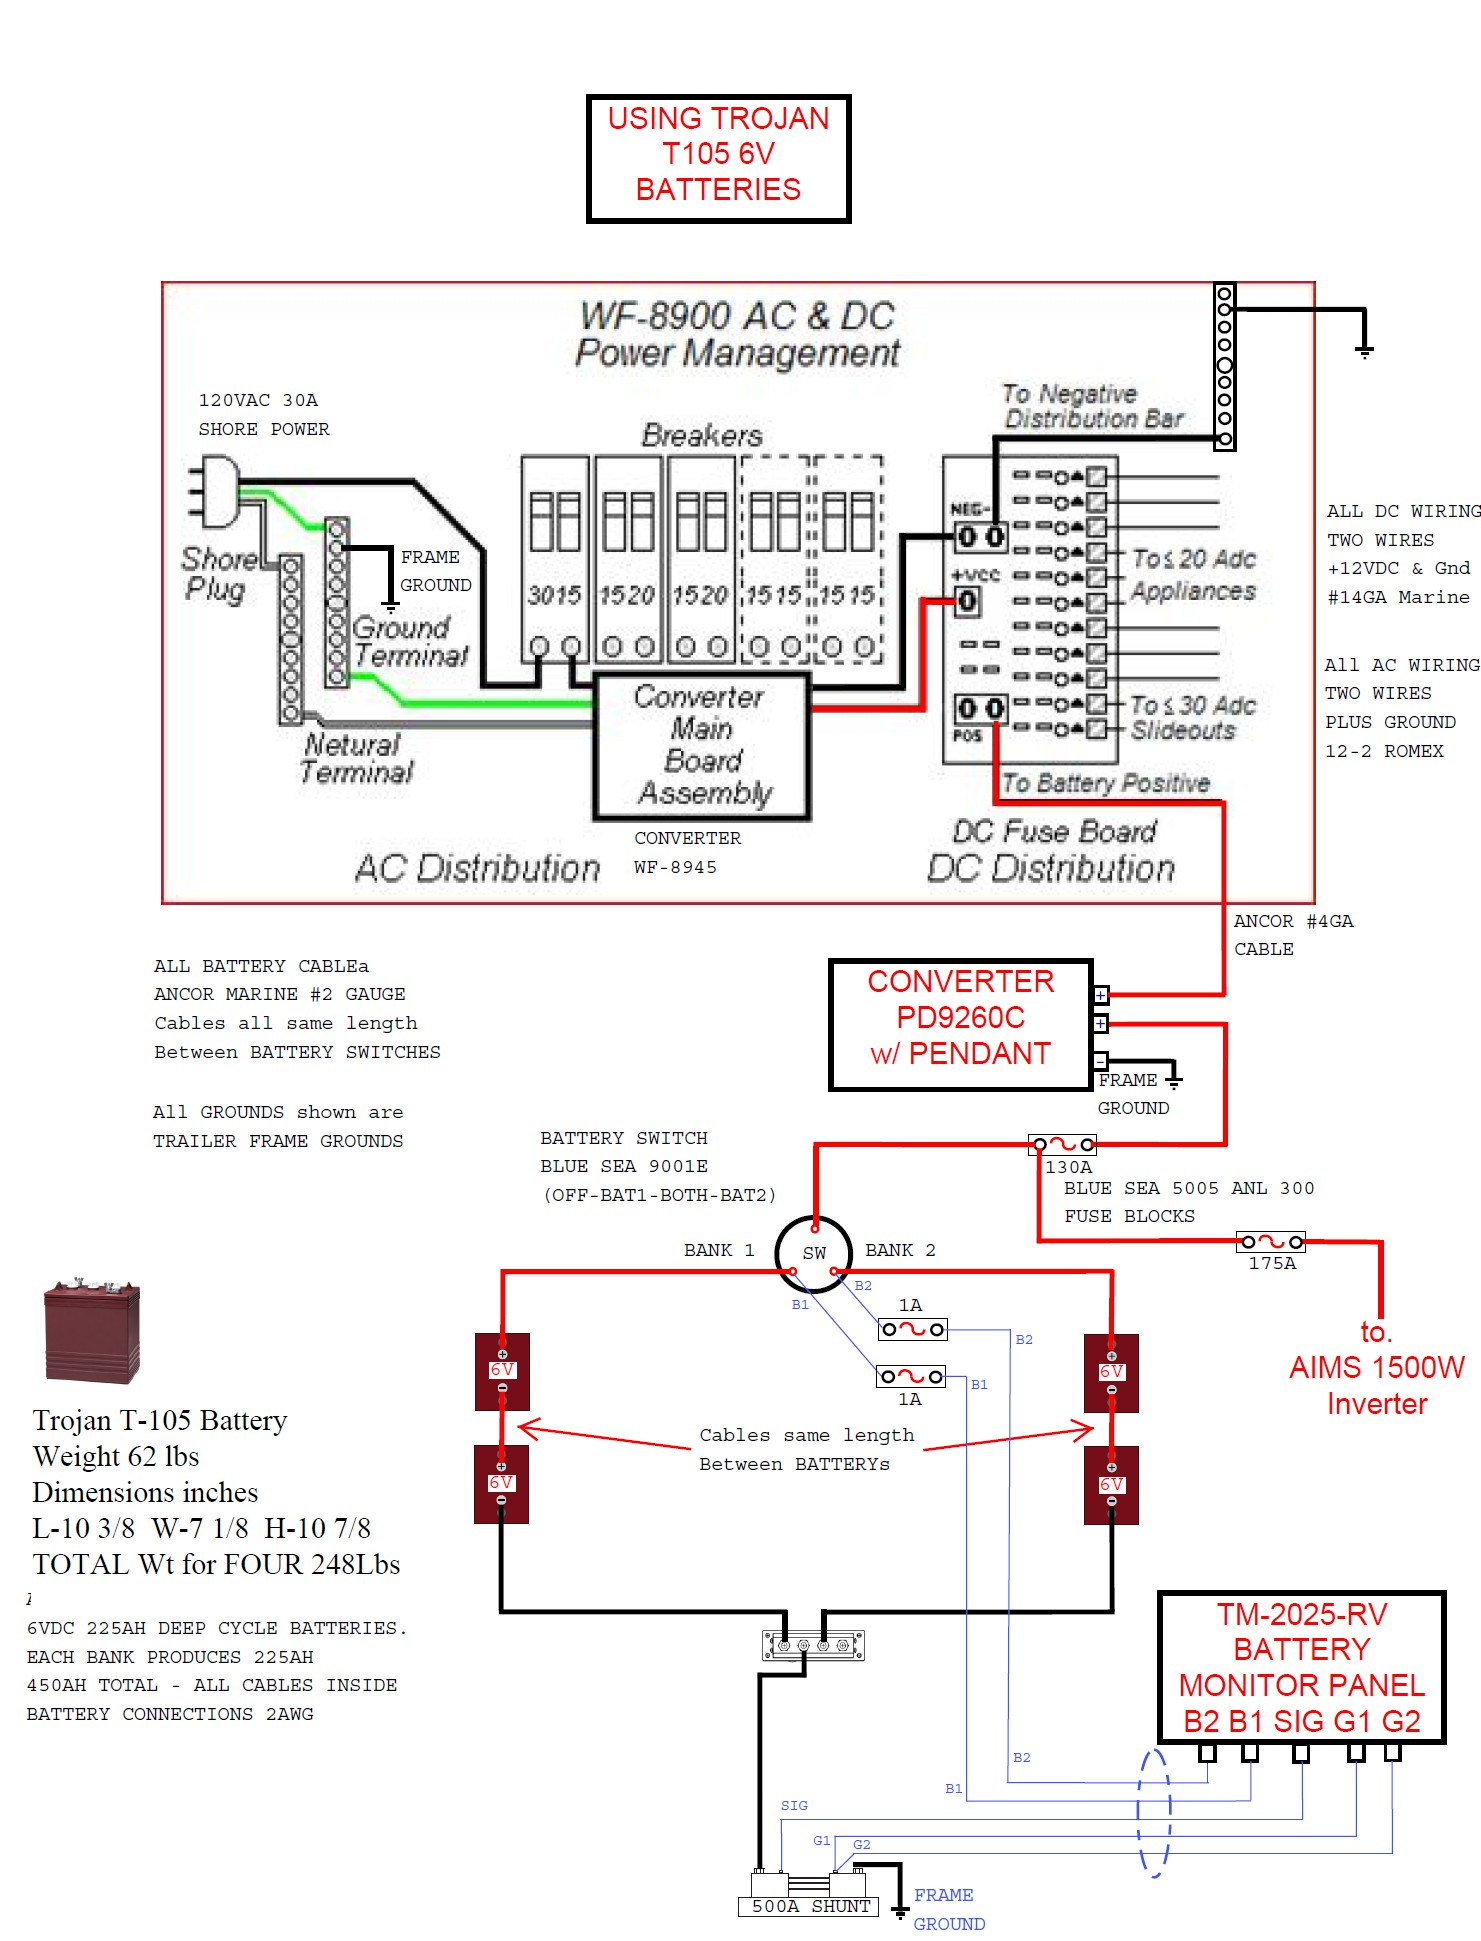 Jayco Battery Wiring Diagram on jayco connector diagram, jayco owner's manual, jayco battery wiring, pop up camper lift system diagram, jayco pop-up wiring, jayco plumbing diagram,